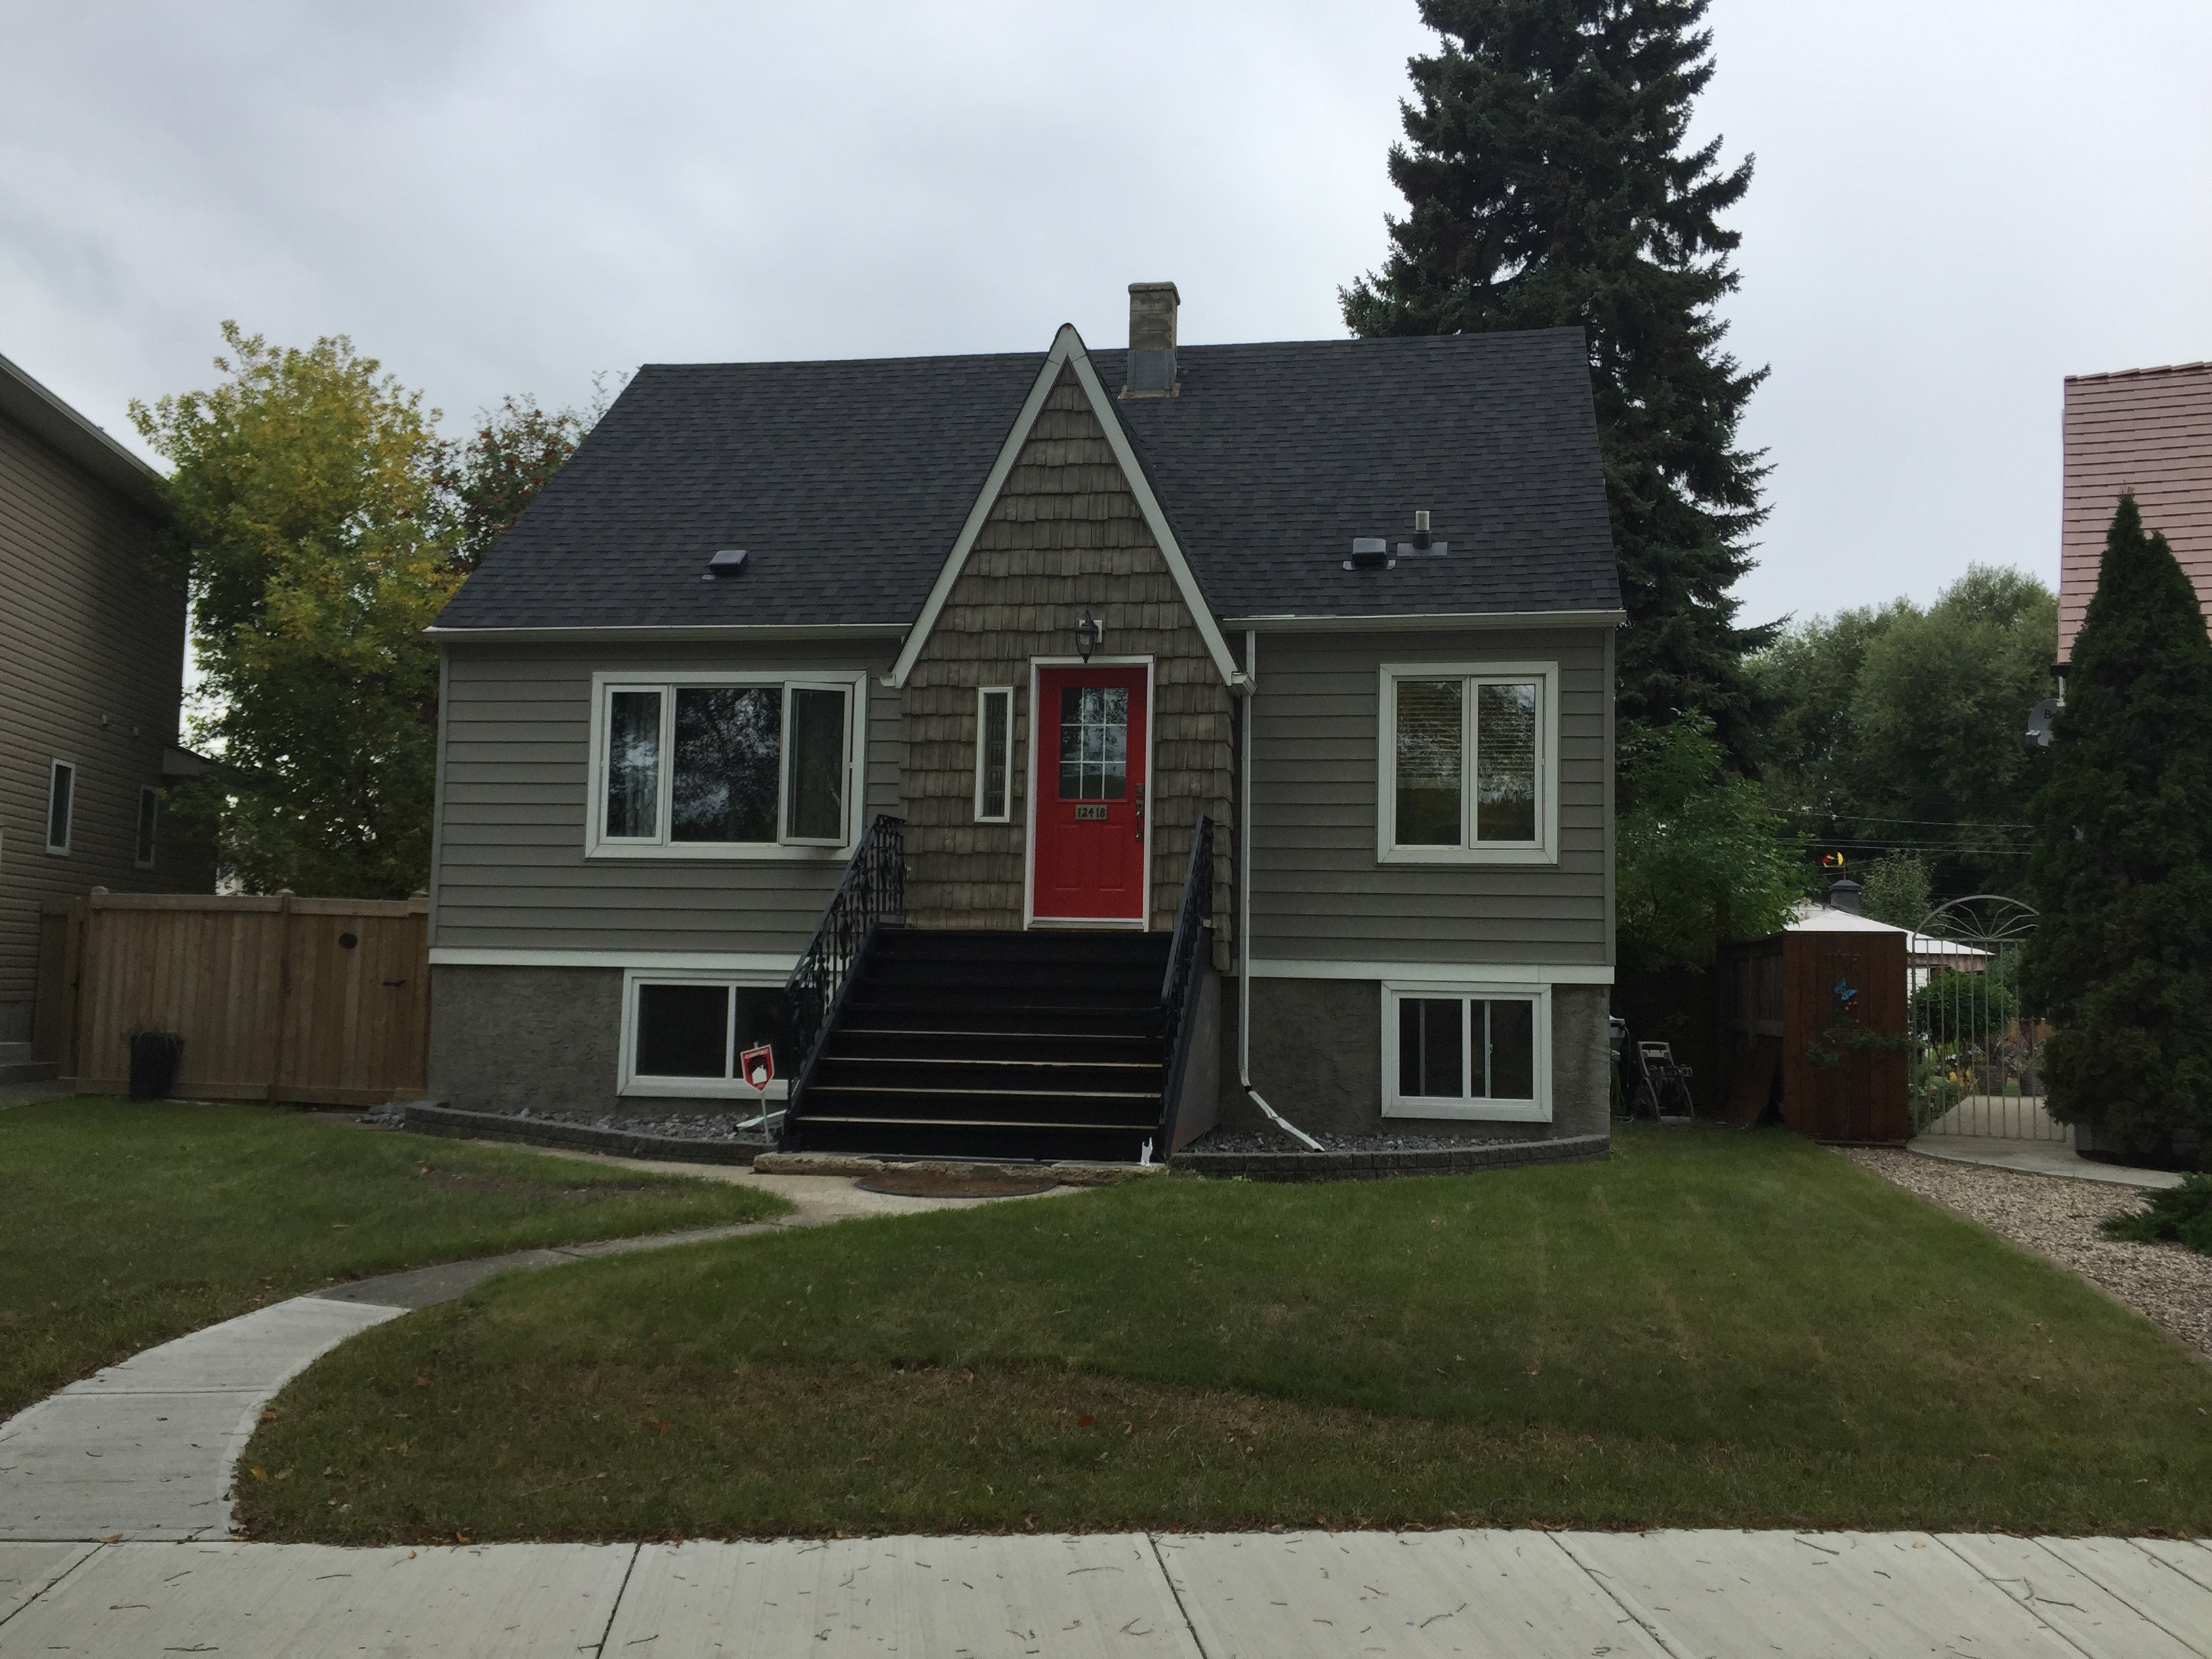 3 bedroom full house finished basement delton 1899 for 3 bedroom with finished basement